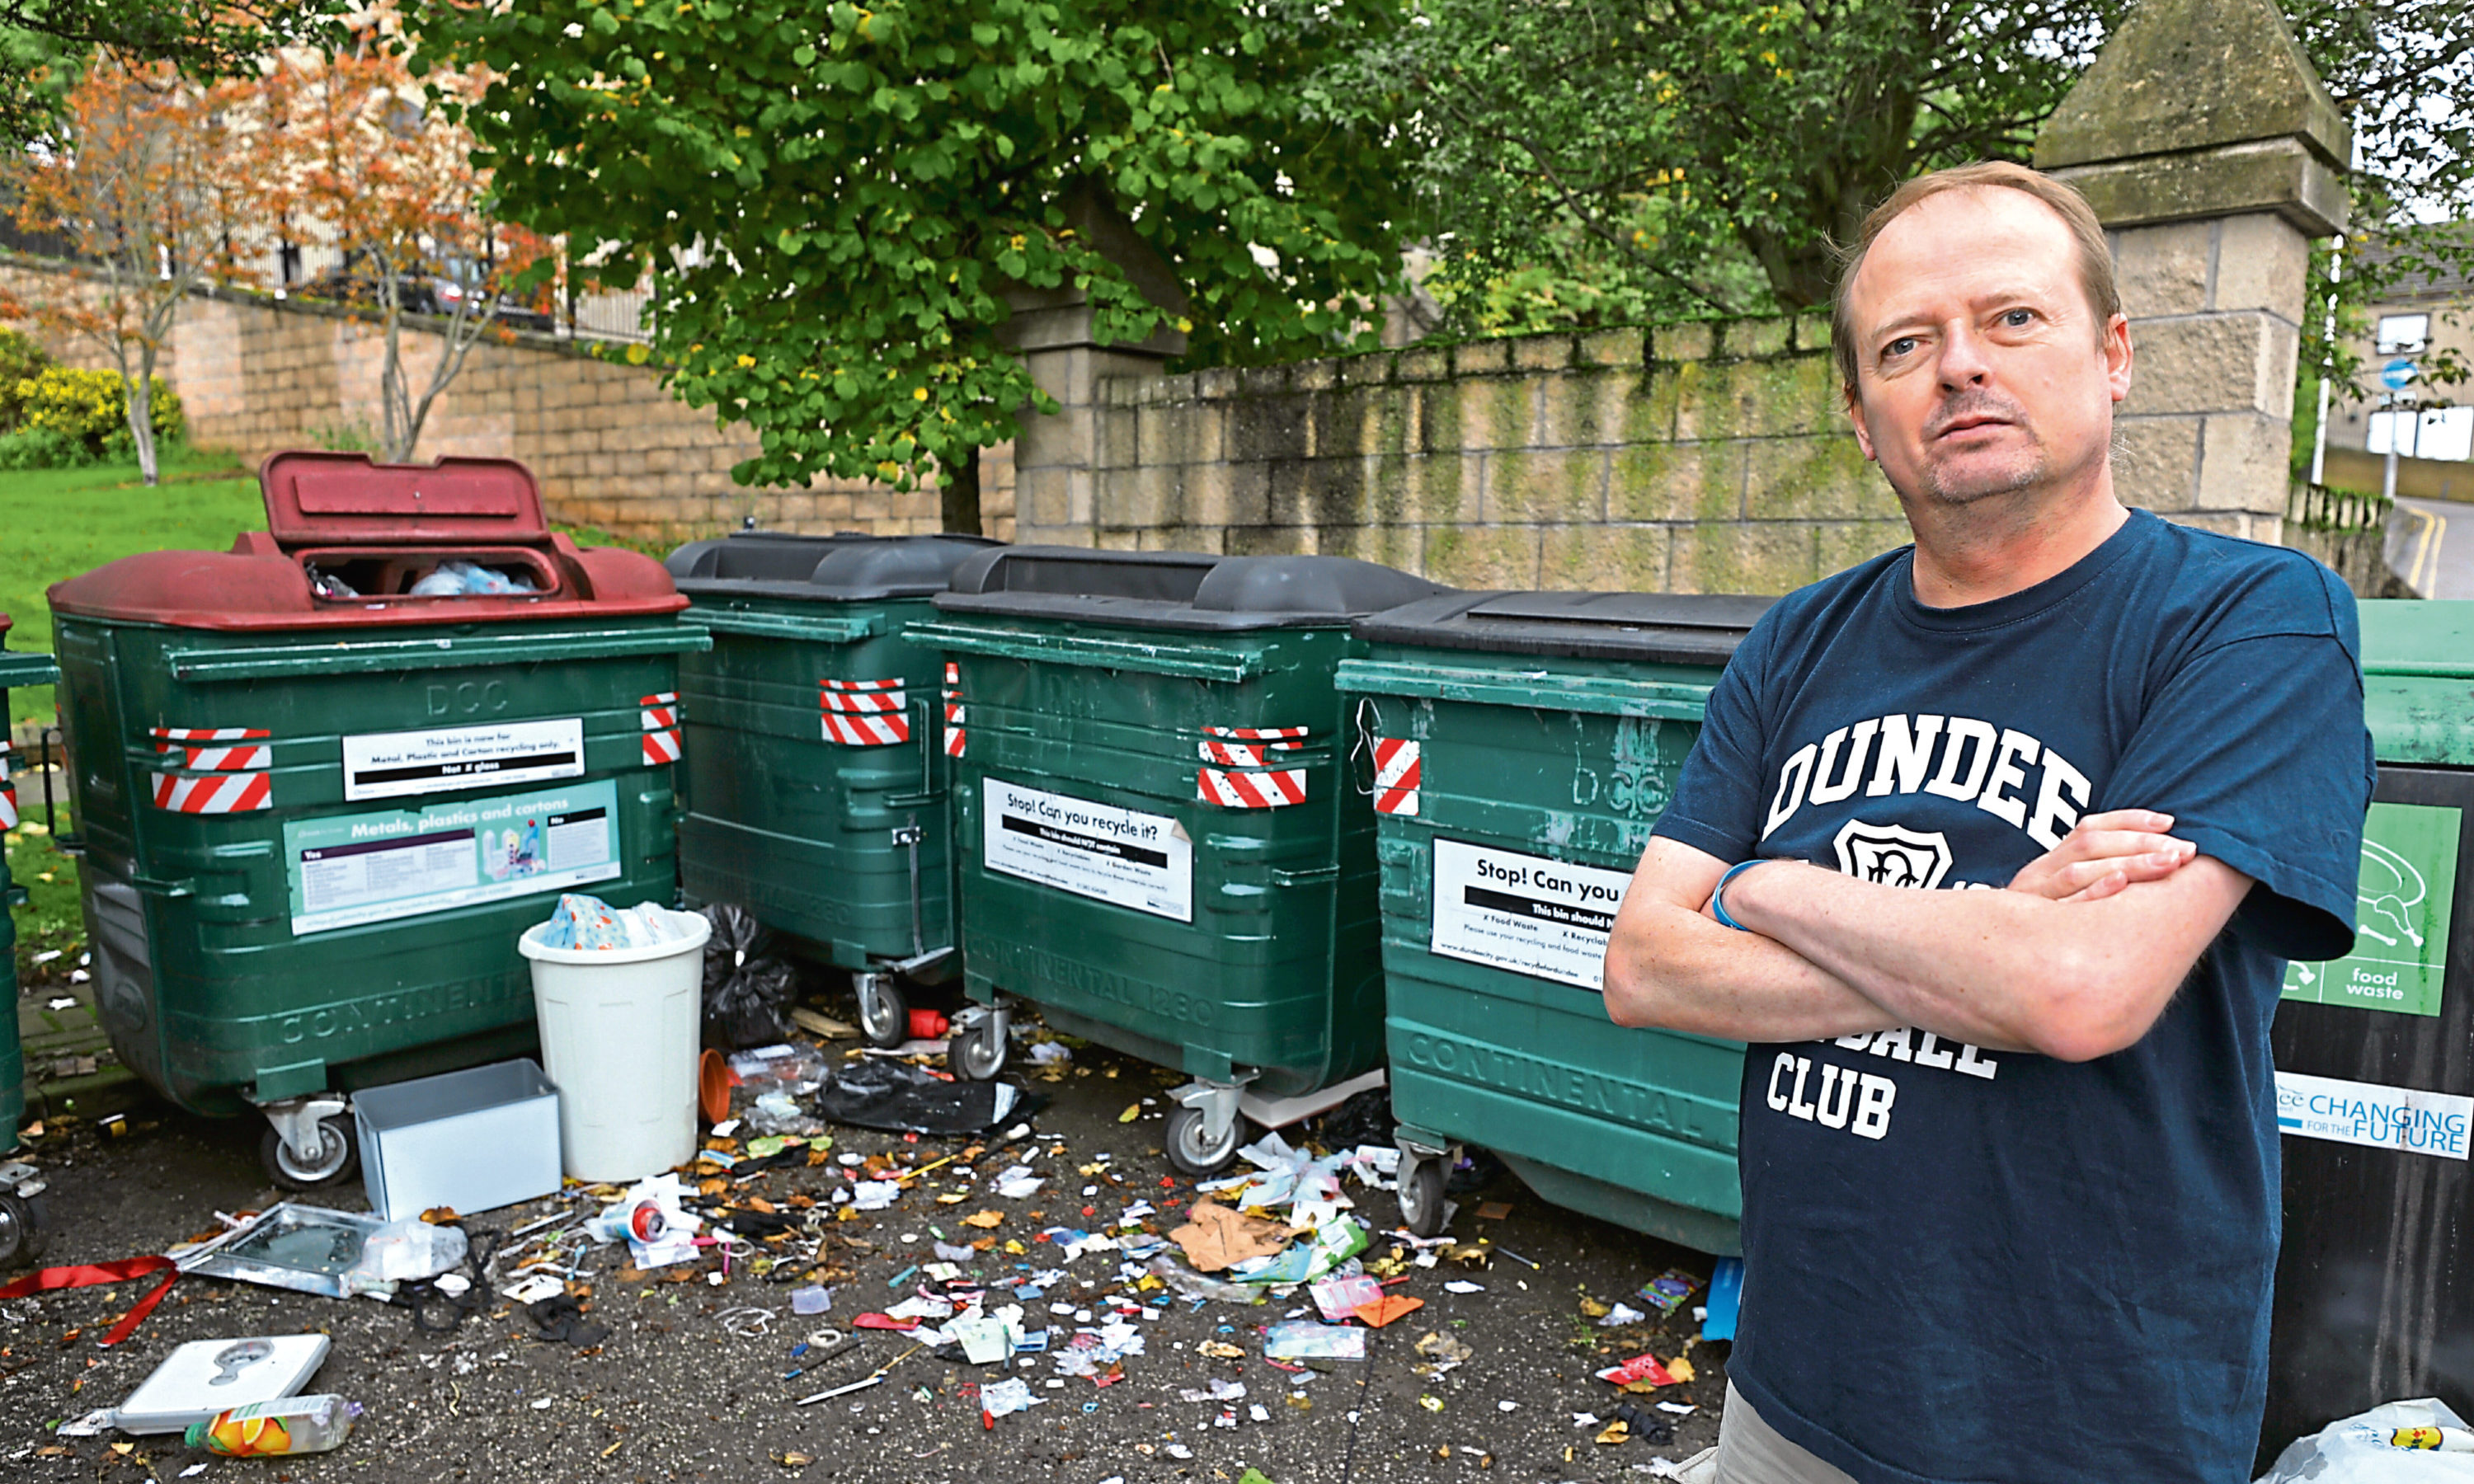 Alan Young beside the overflowing bins at Bonnethill Place.